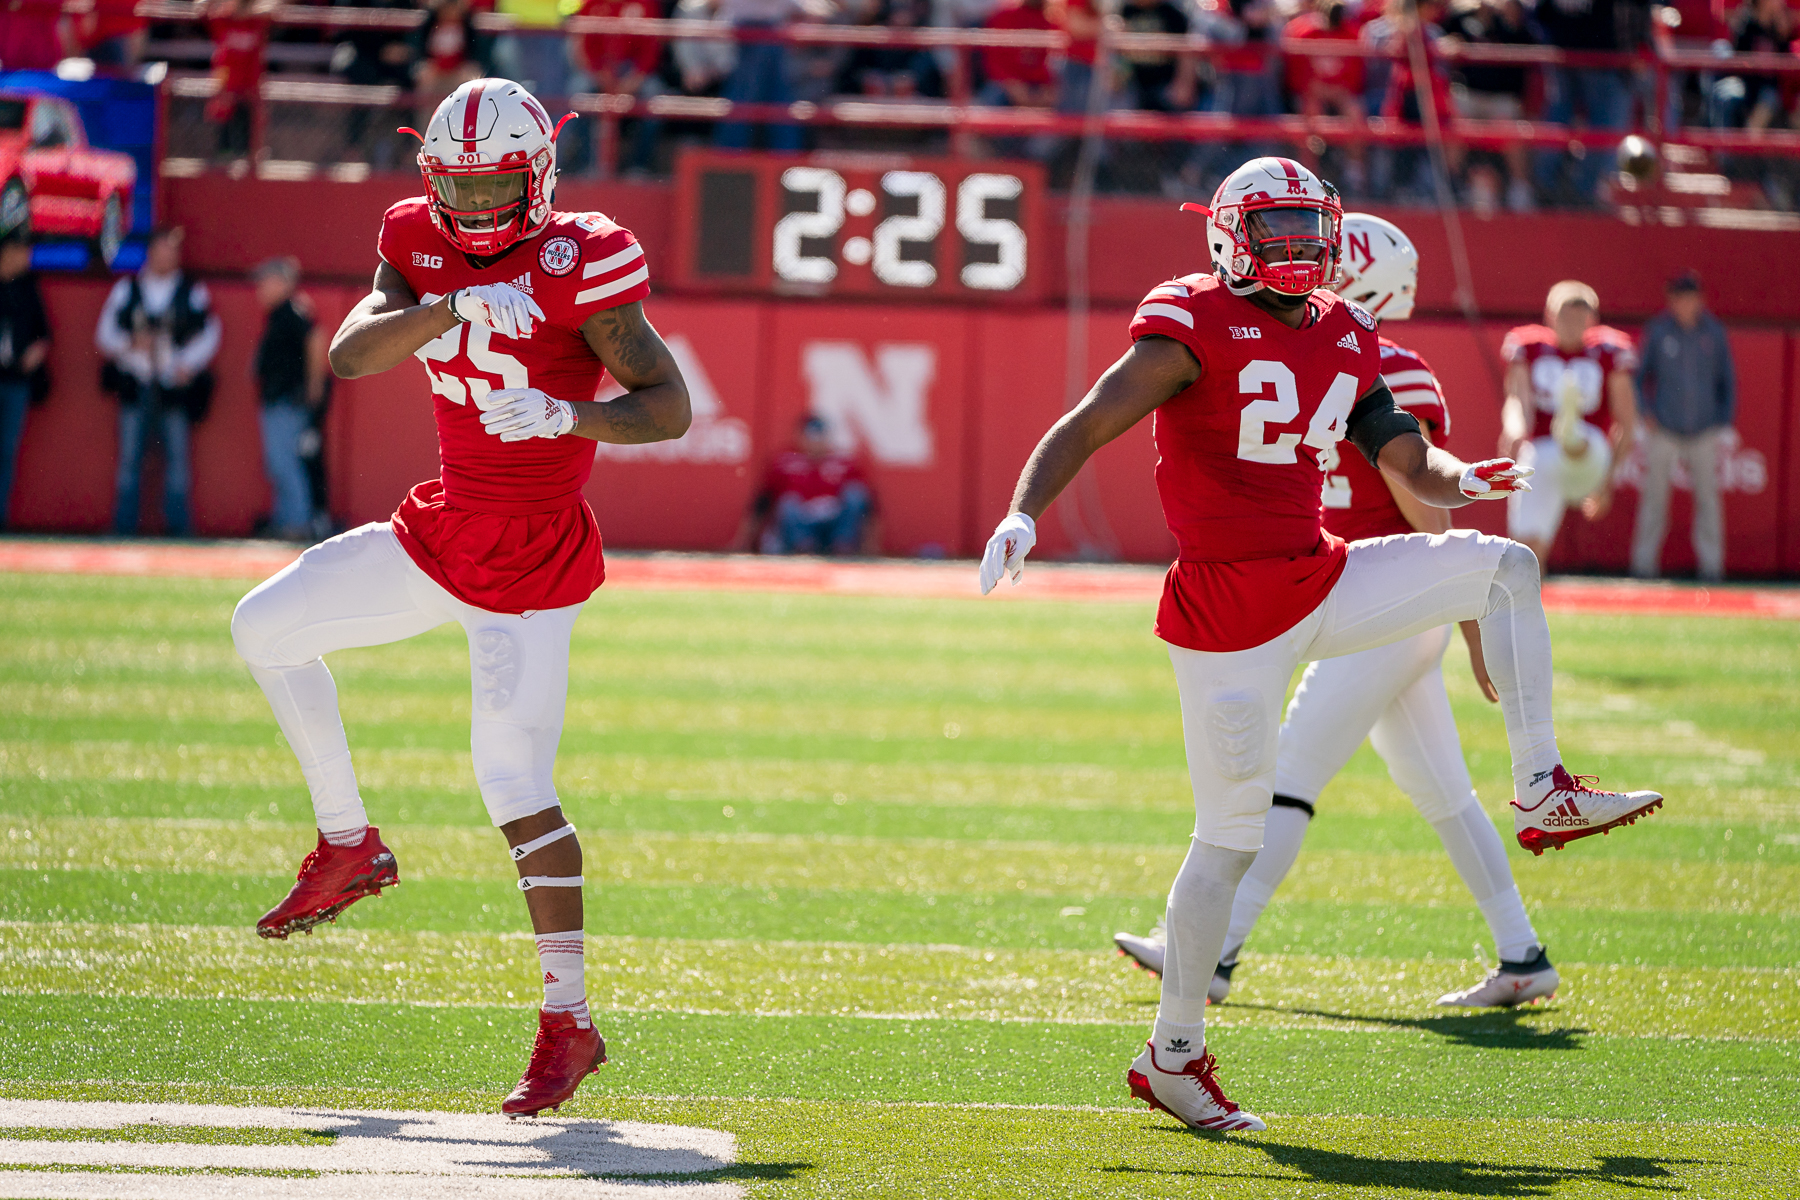 PB181026_FB_Nebr_vs_BCU_01895, paul bellinger boise editorial photographer, Huskers 2018 fb.jpg